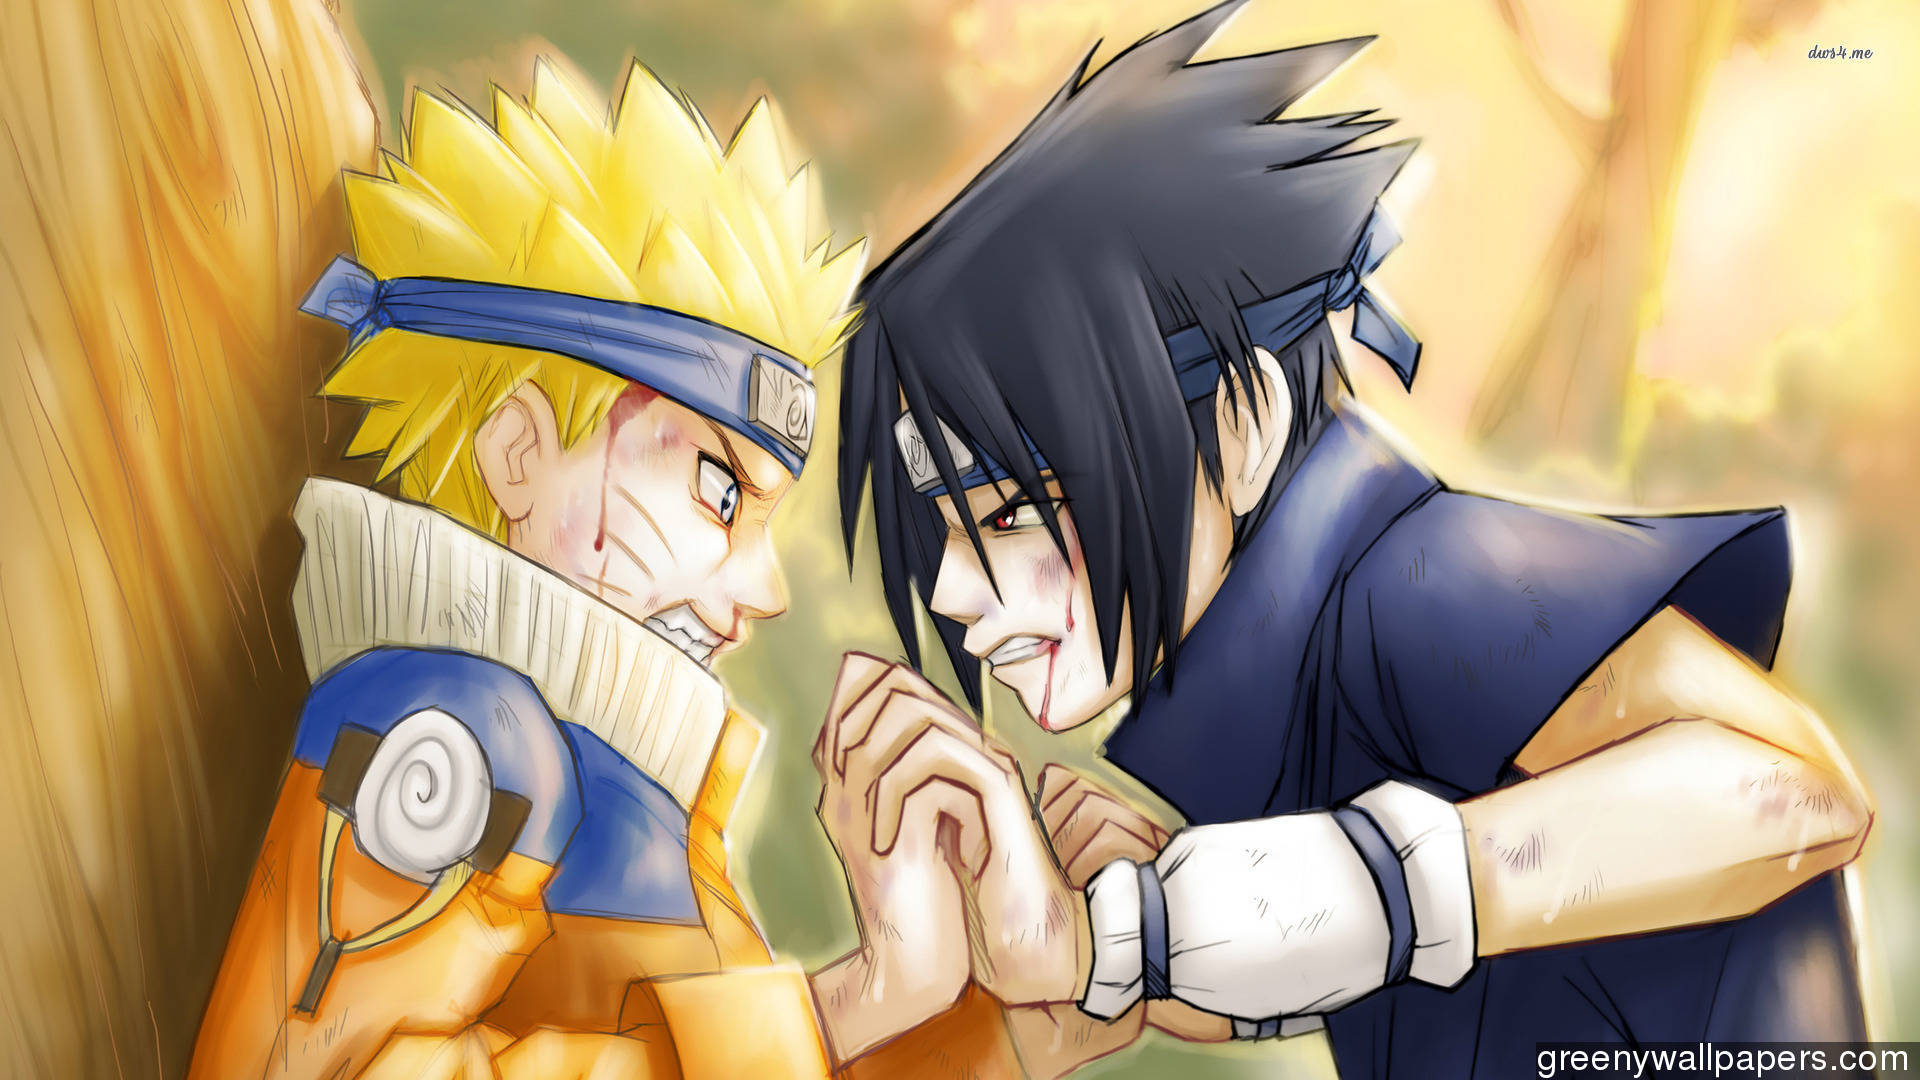 naruto vs sasuke wallpaper download free